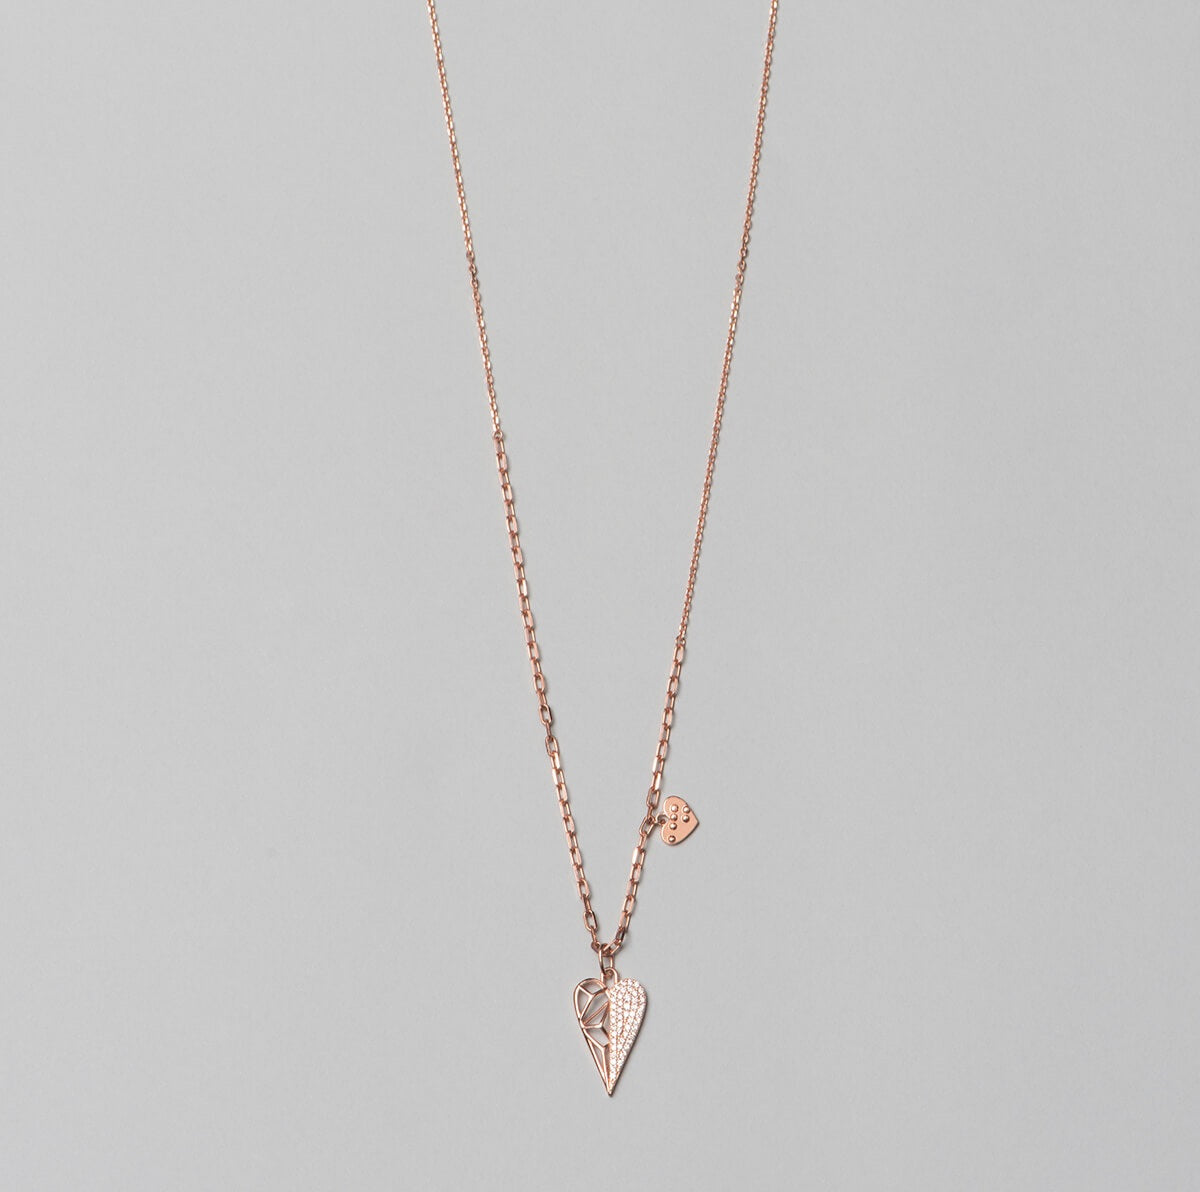 Rose gold plated, 925 sterling silver  necklace with heart pendant. Half of the pendant is decorated with white zirconia stones, complete look.